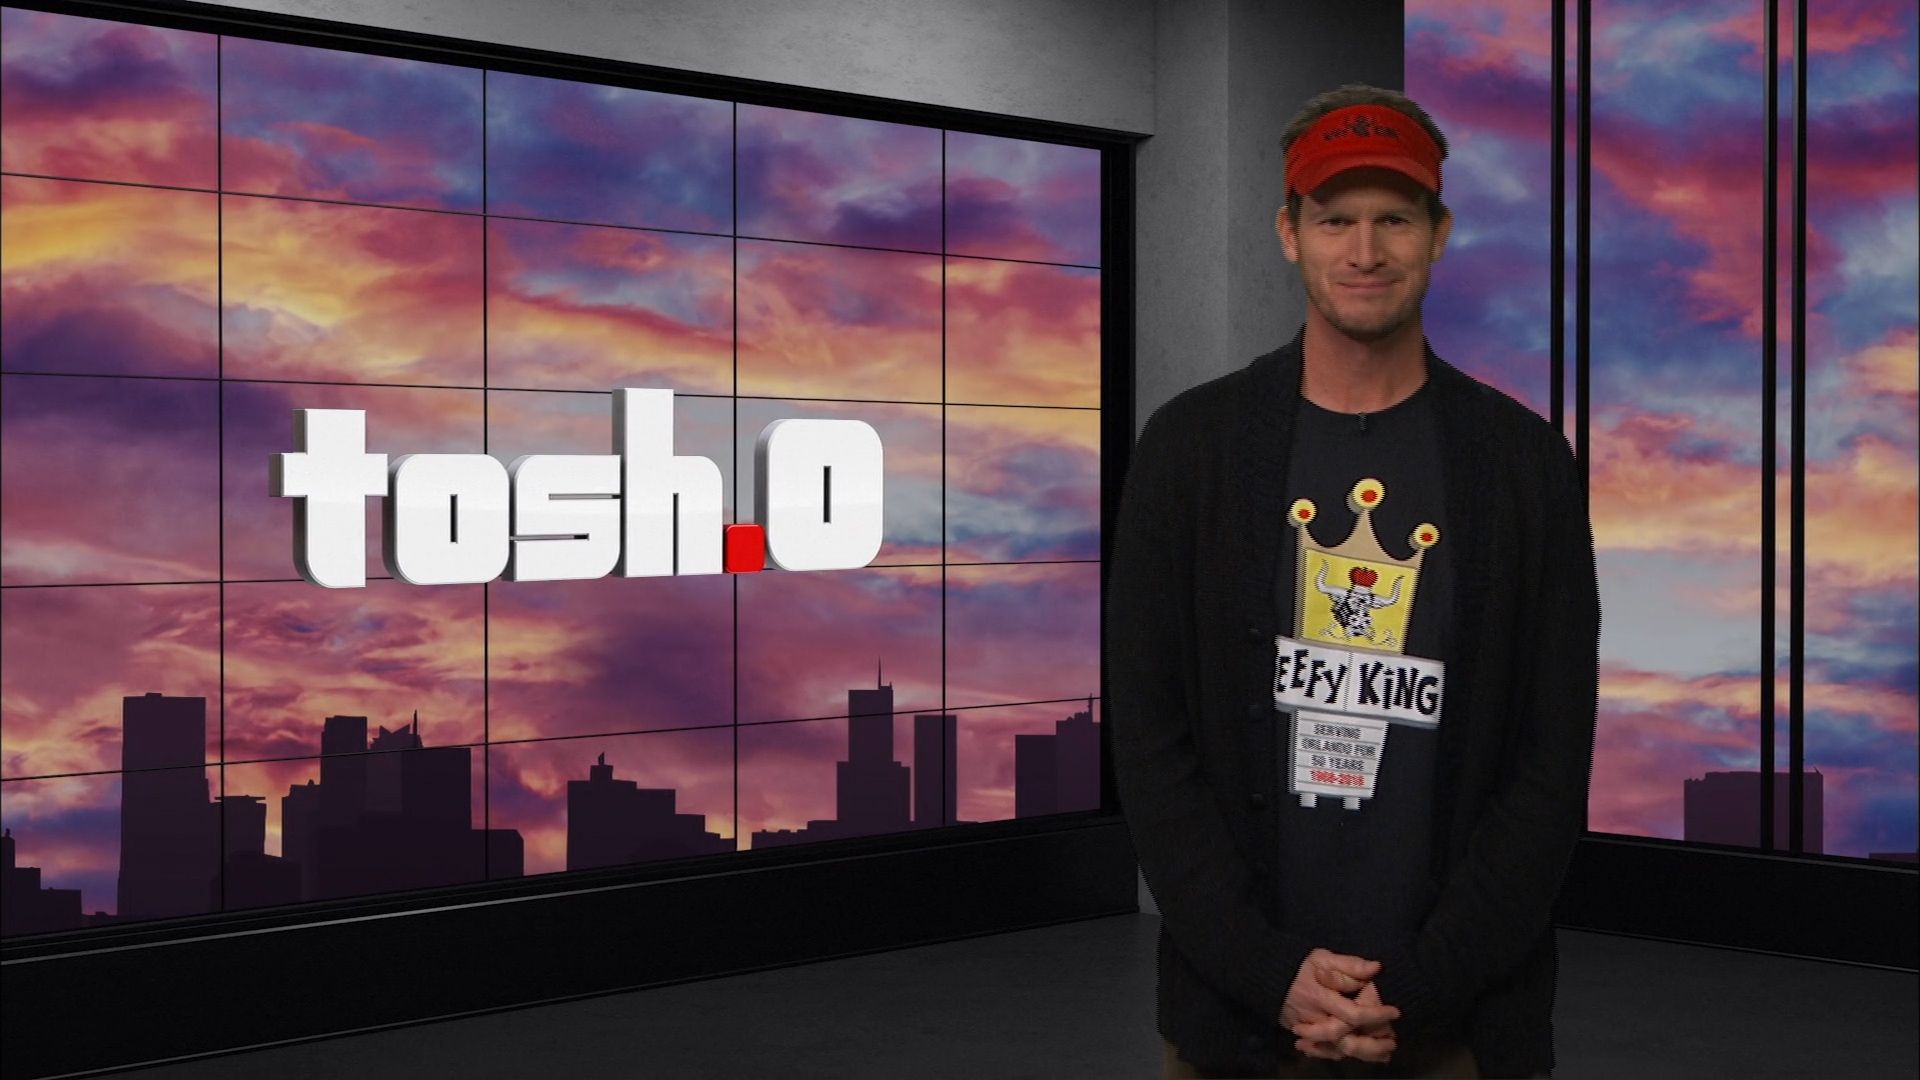 tosh 0 march 19